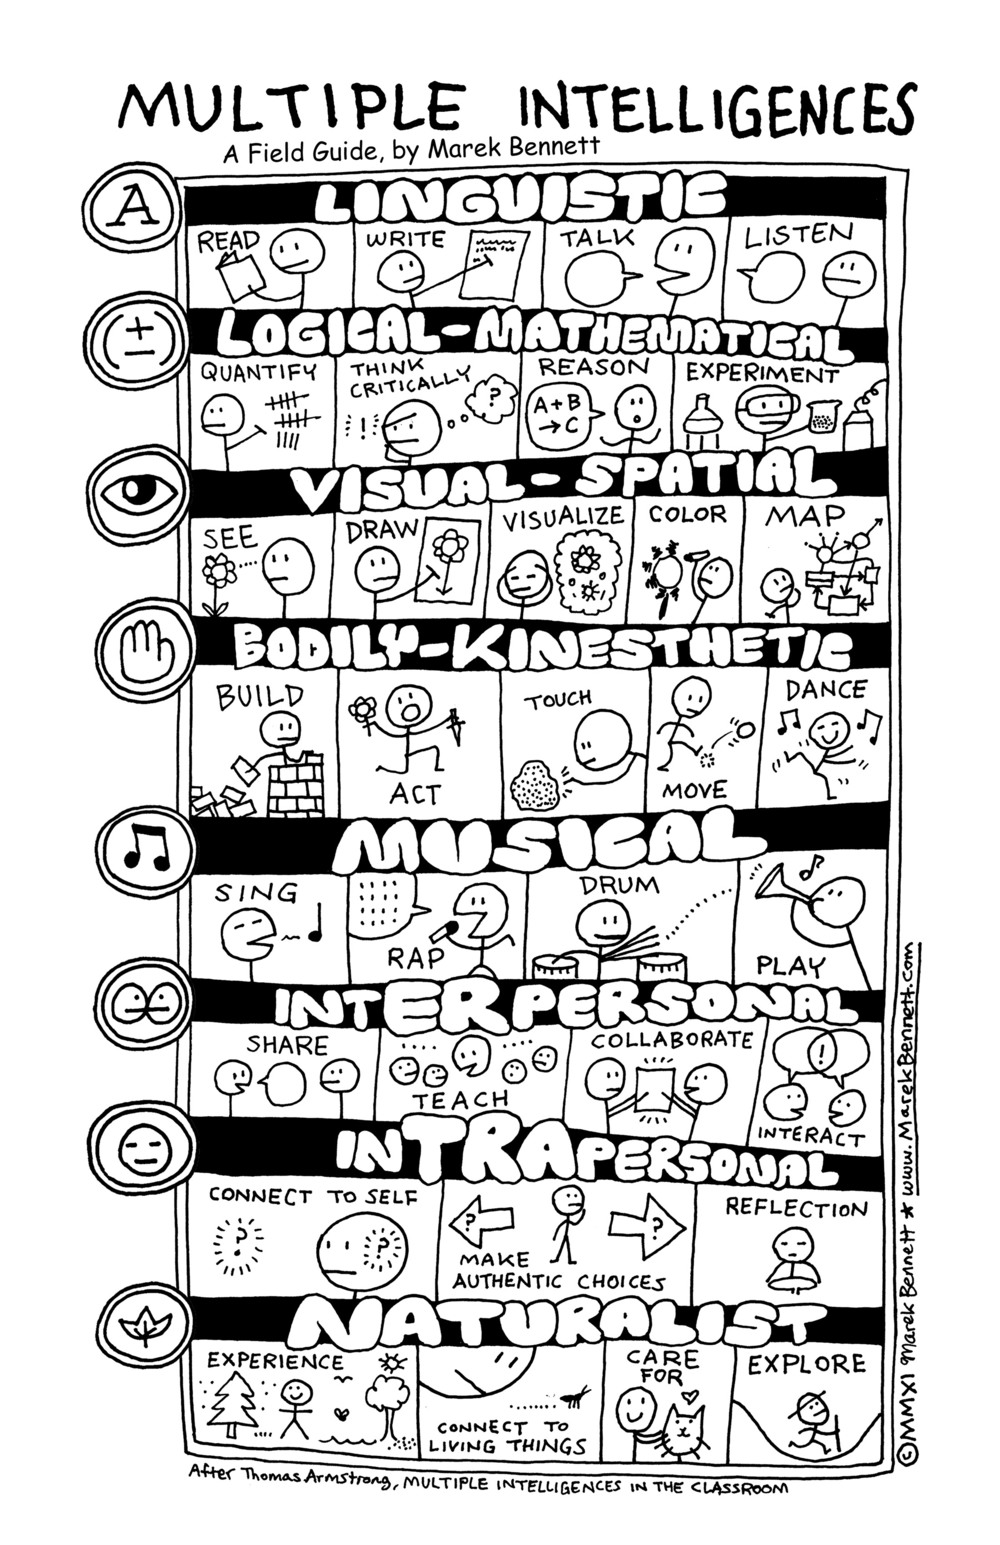 I would argue that musical uses most of these different intelligences, yet many of us skip out on some of the bodily kinesthetic possibilities of how making music feels.  Image by Marek Bennett.